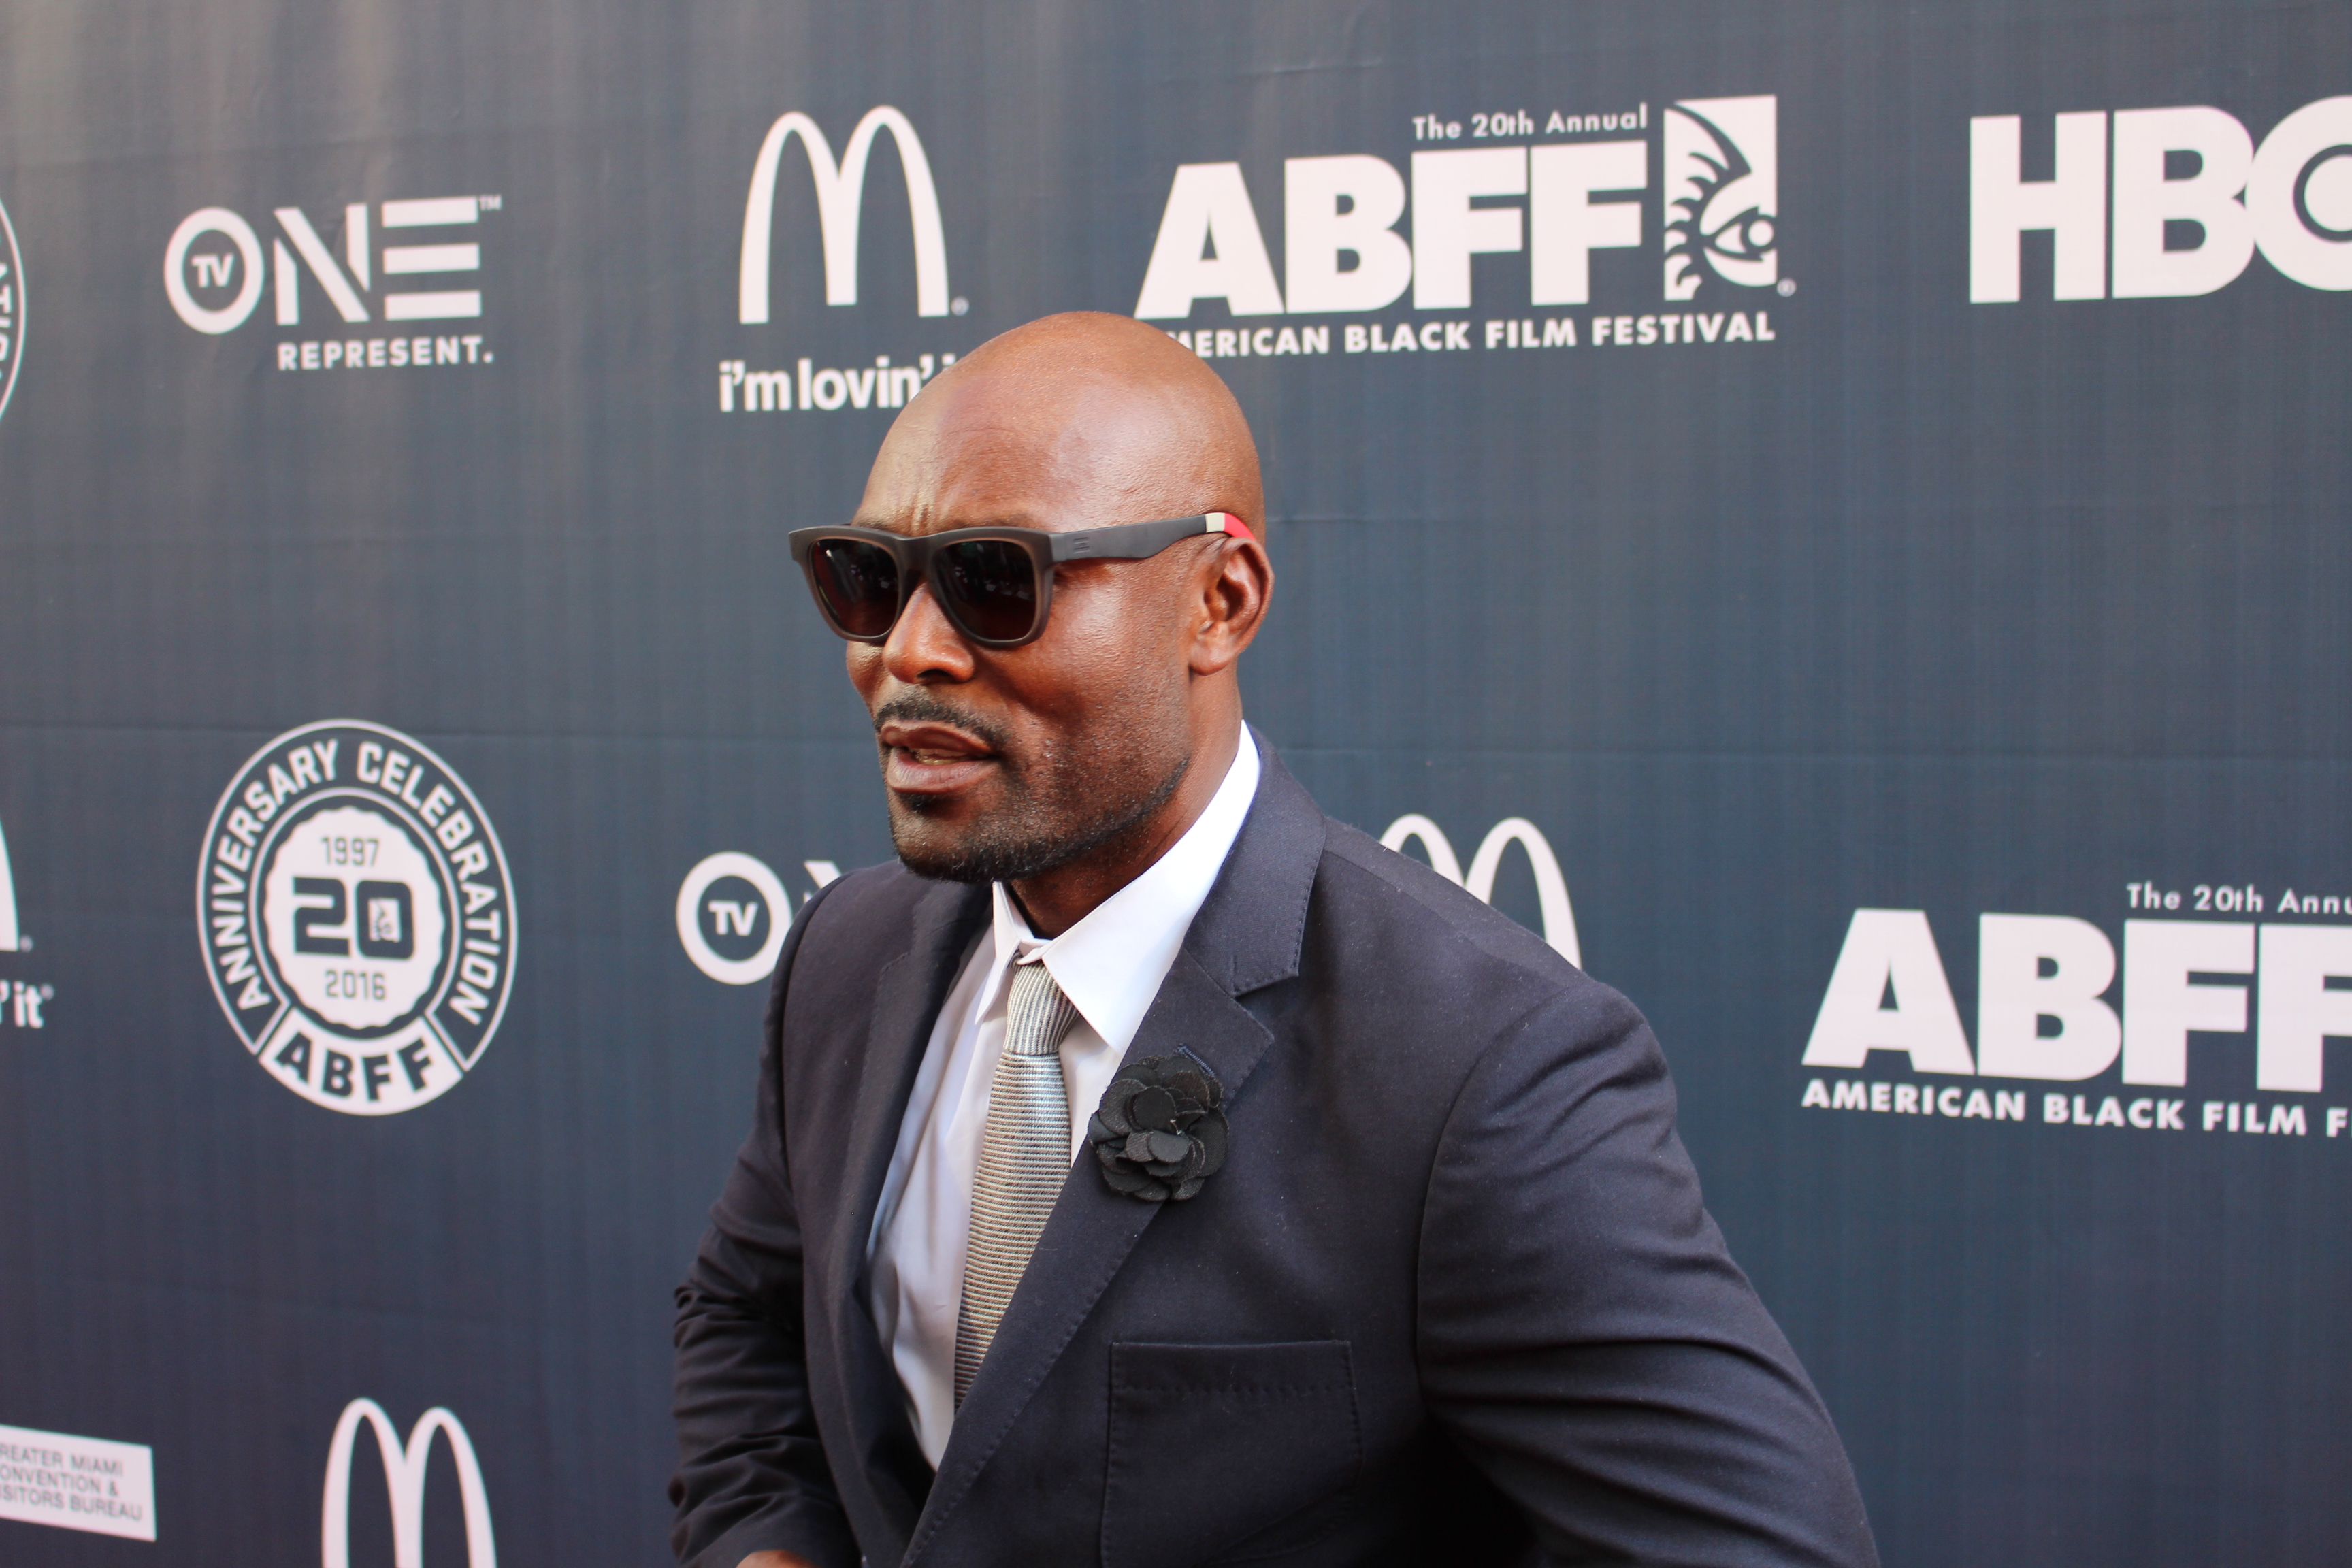 BOSSY! Around Town- Bossy Invades the 20th Anniversary of the American Black Film Festival